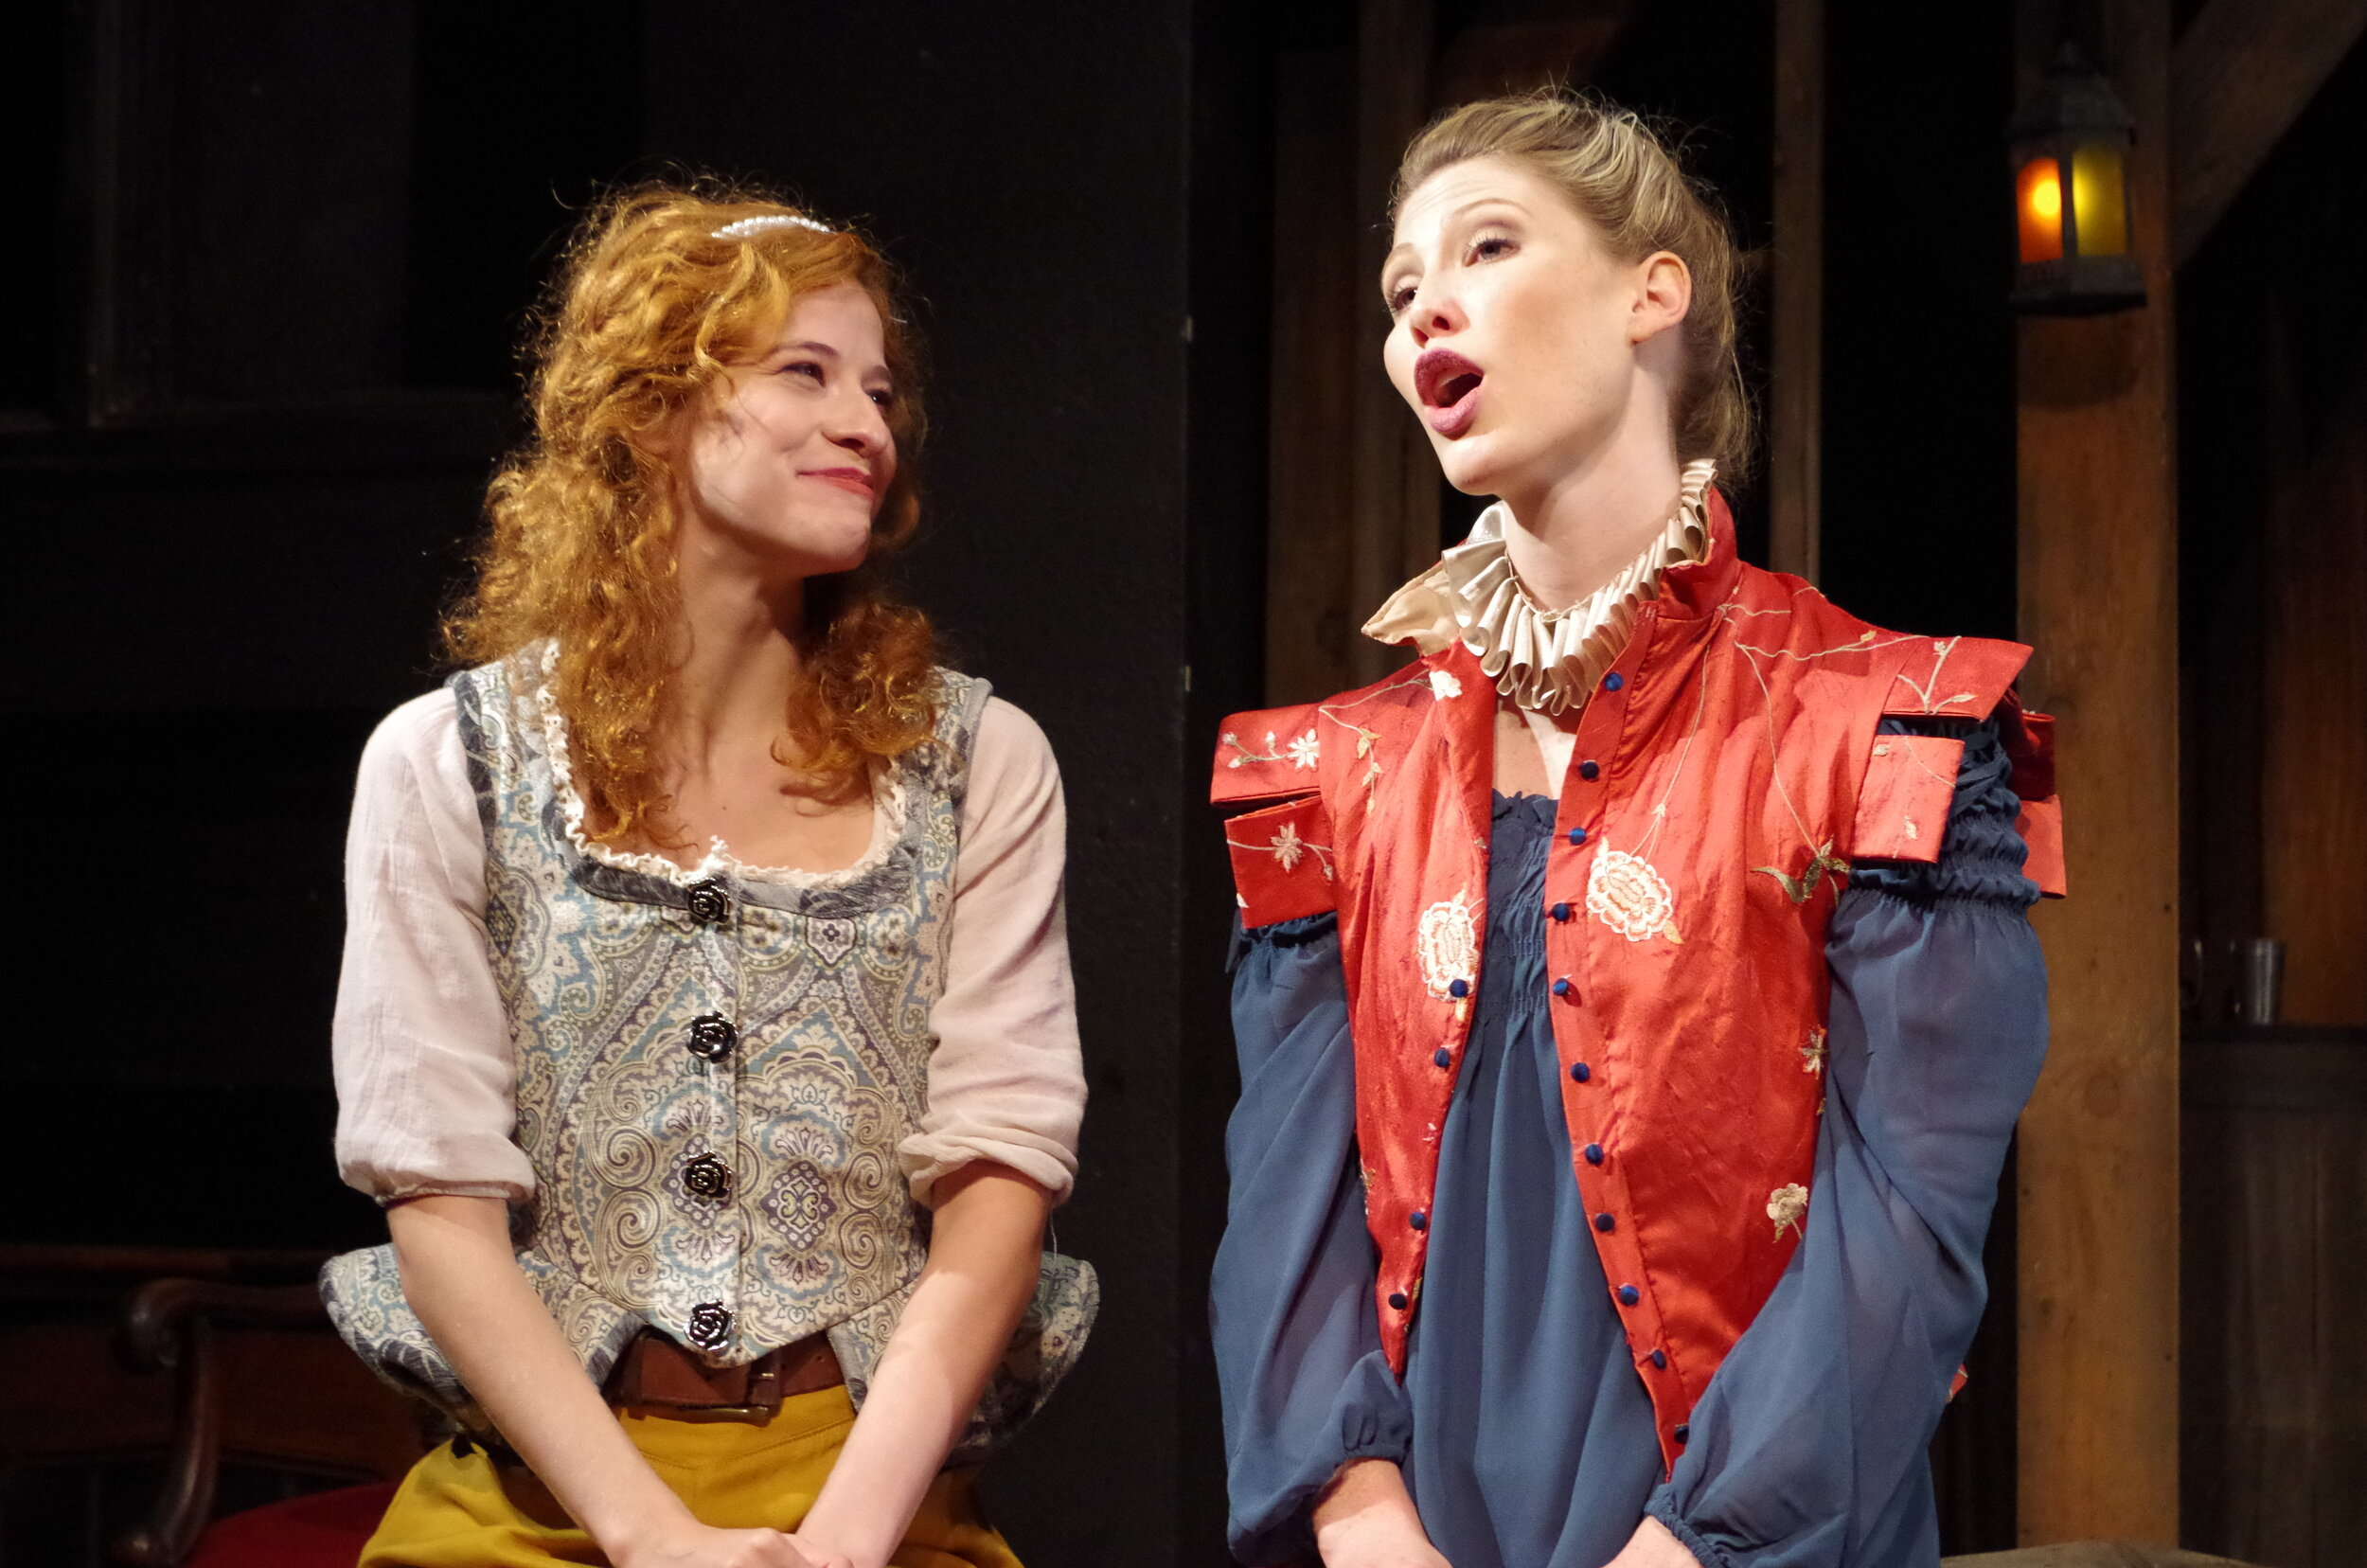 Hannah Karpenko and Tess Marshall in  The King's Legacy  at Bristol Valley Theater (Photo by Rich Miller)